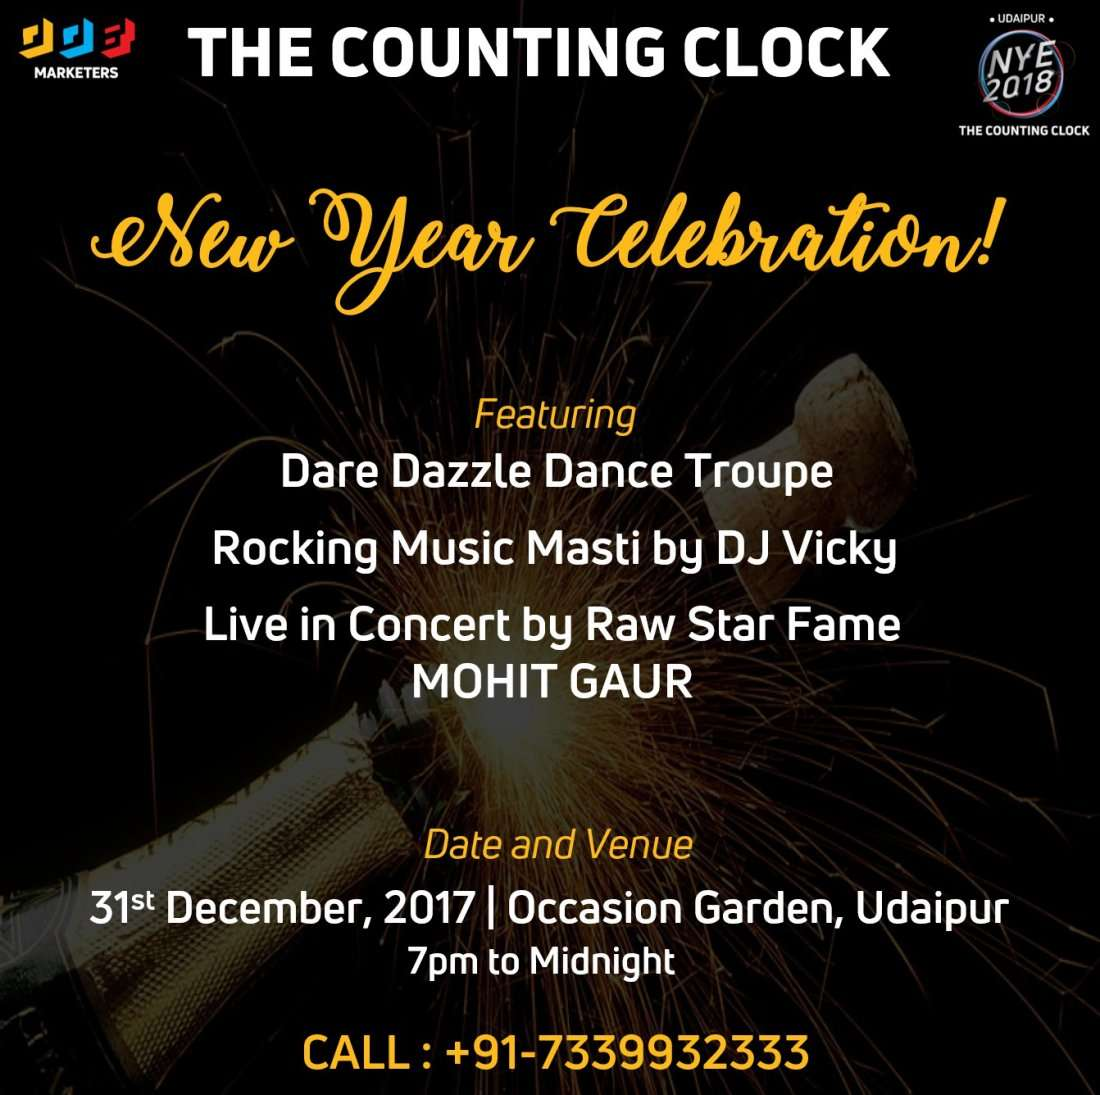 The Counting Clock New Year Eve 2018